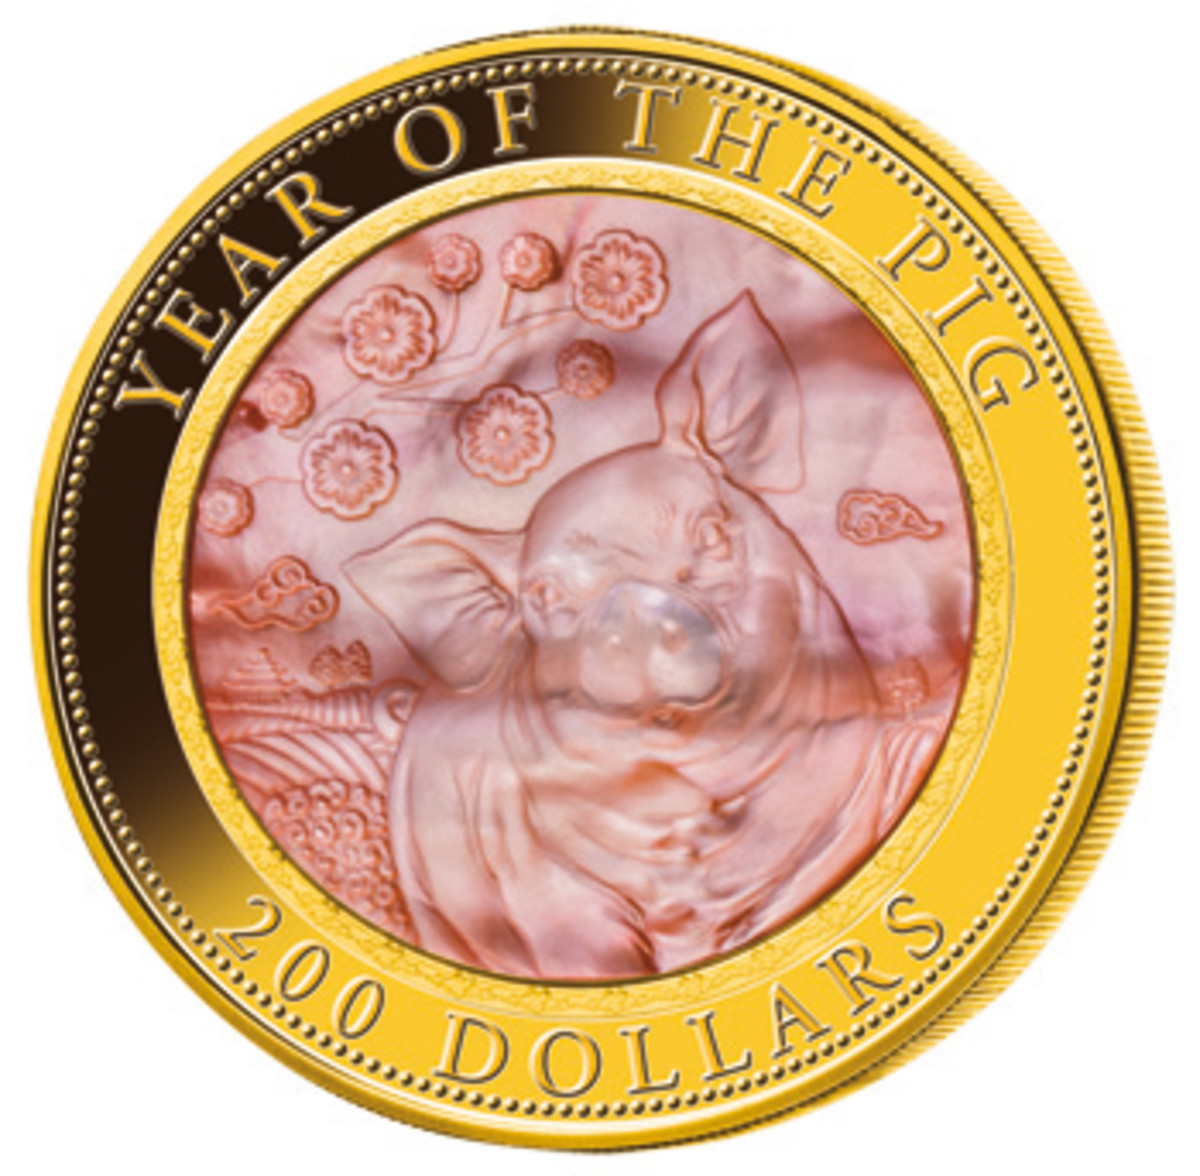 Reverse of the ninth massive 5 oz lunar gold proof $200 struck by MdM showing the Earth Pig engraved in a mother-of-pearl insert. (Image courtesy MDM Münzhandelsgesellschaft mbH)